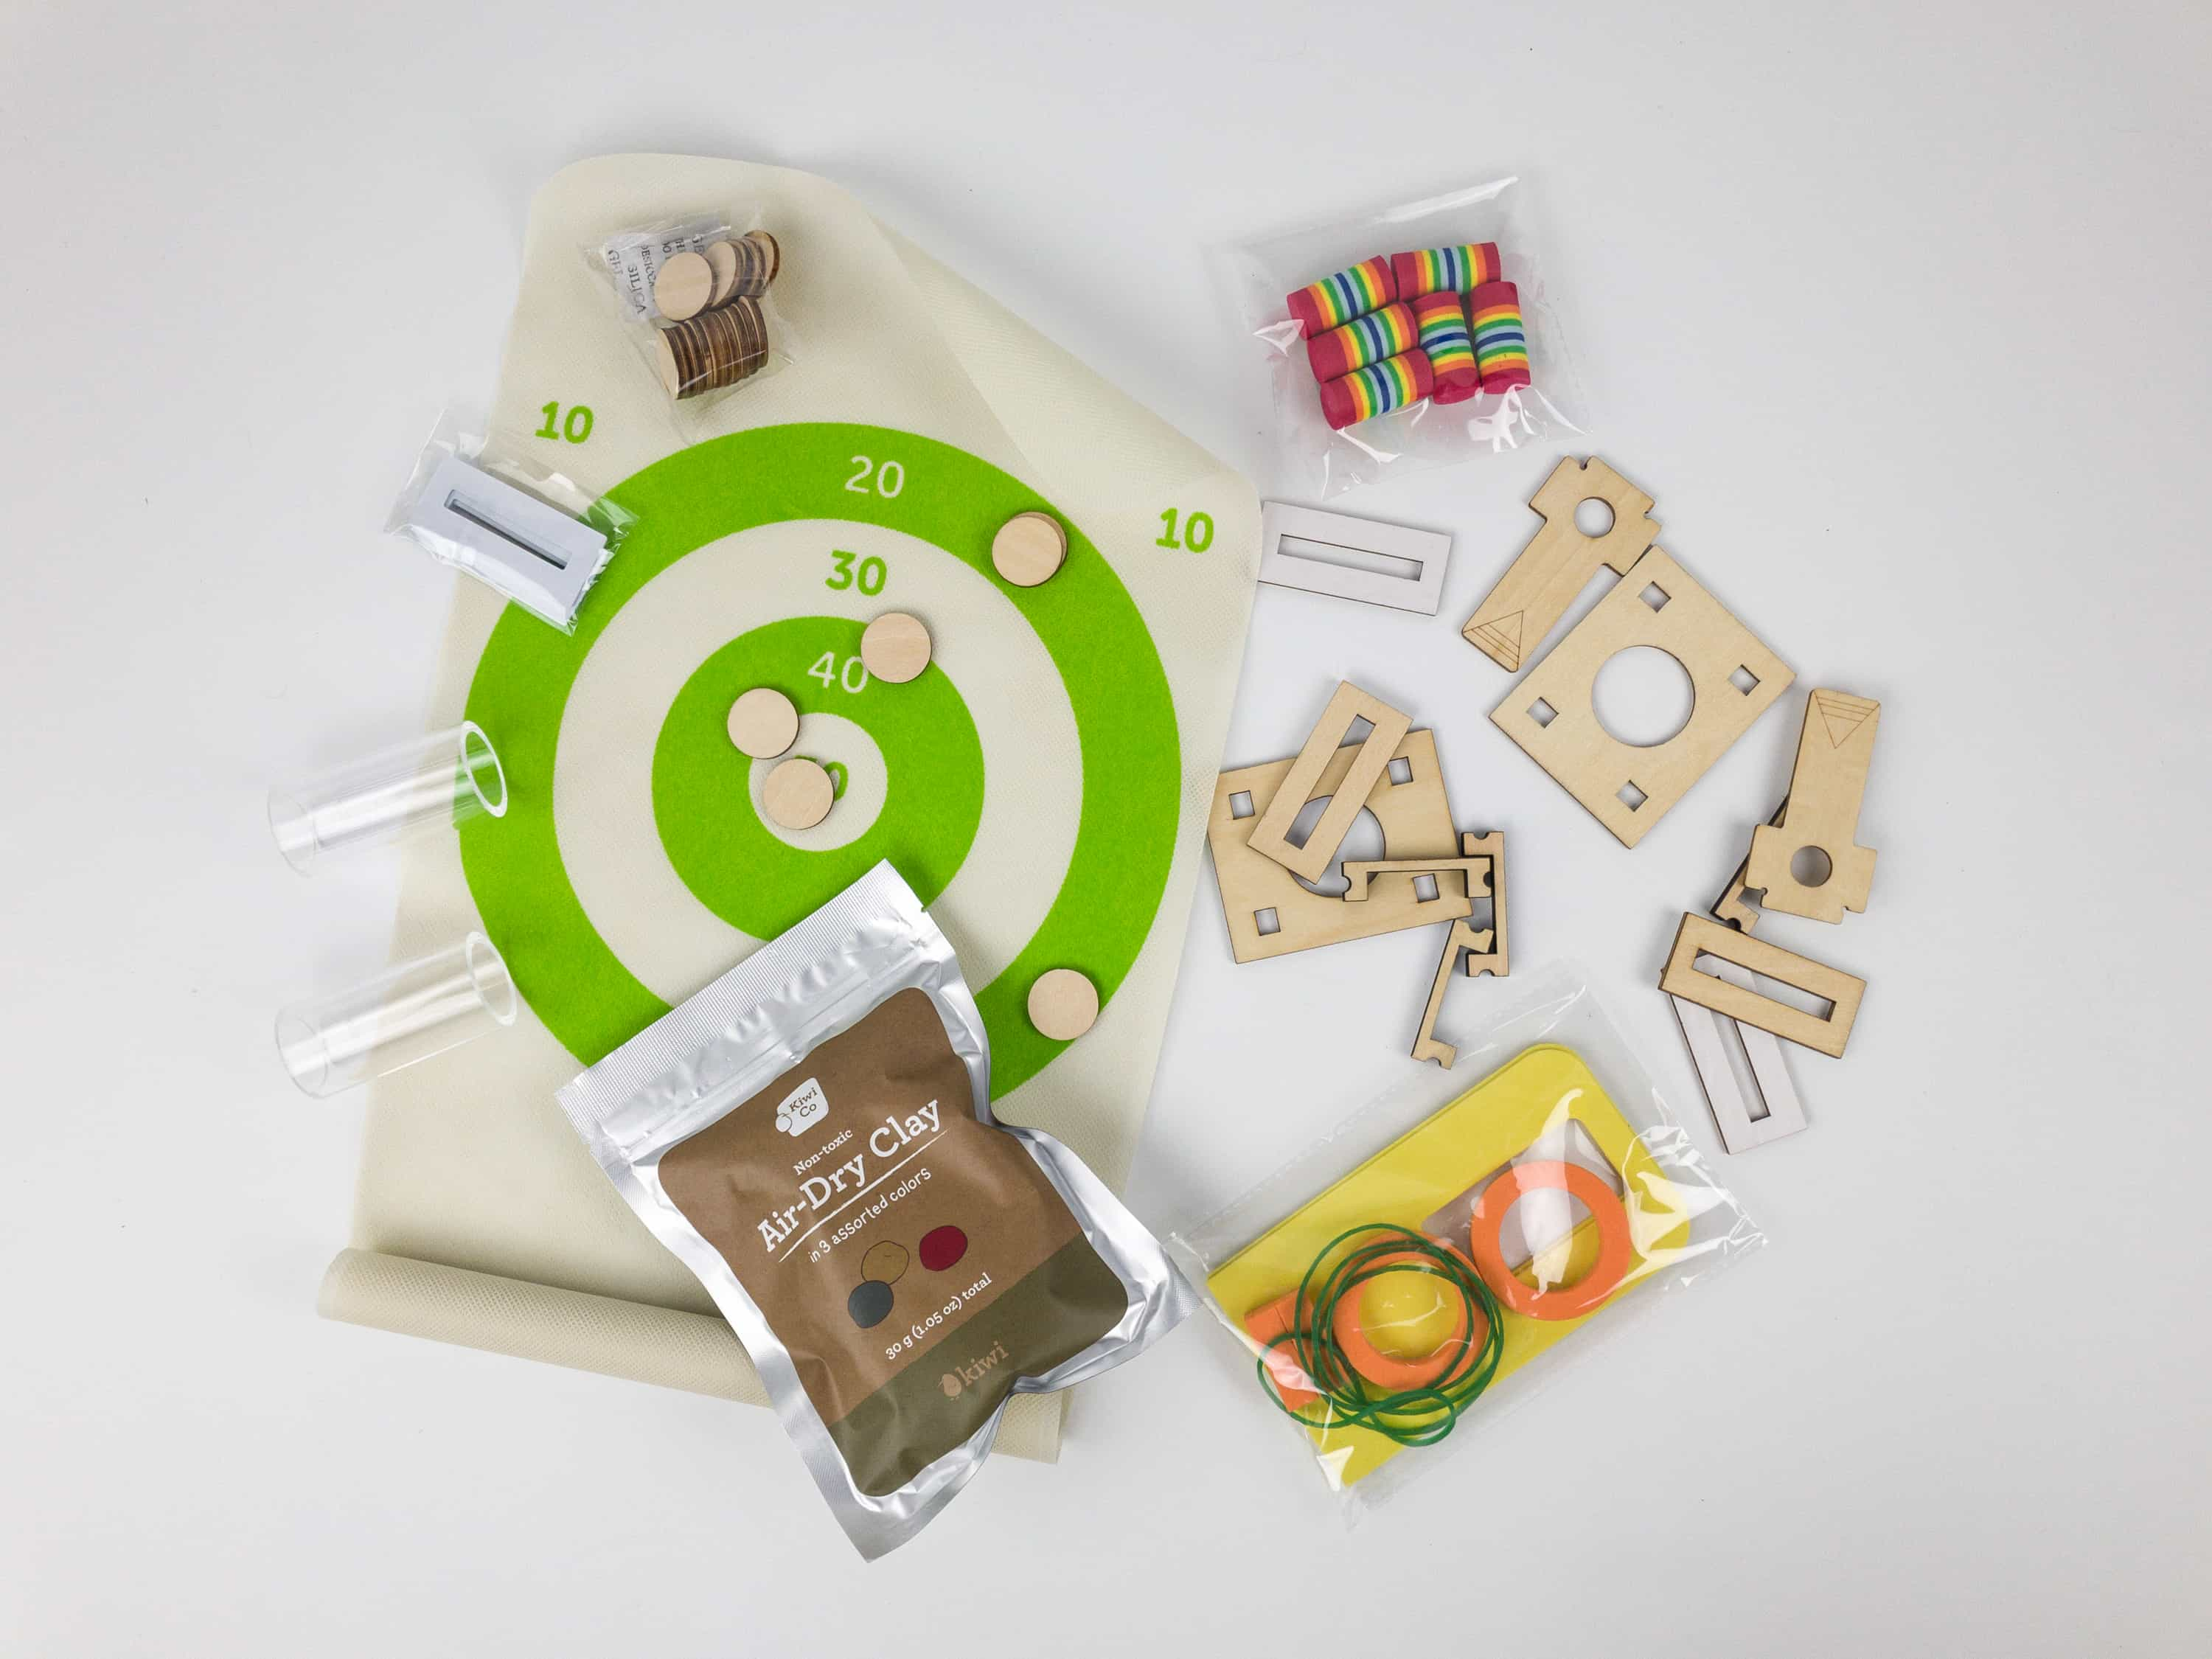 Kiwi Crate Review & Coupon – Disk Launchers!